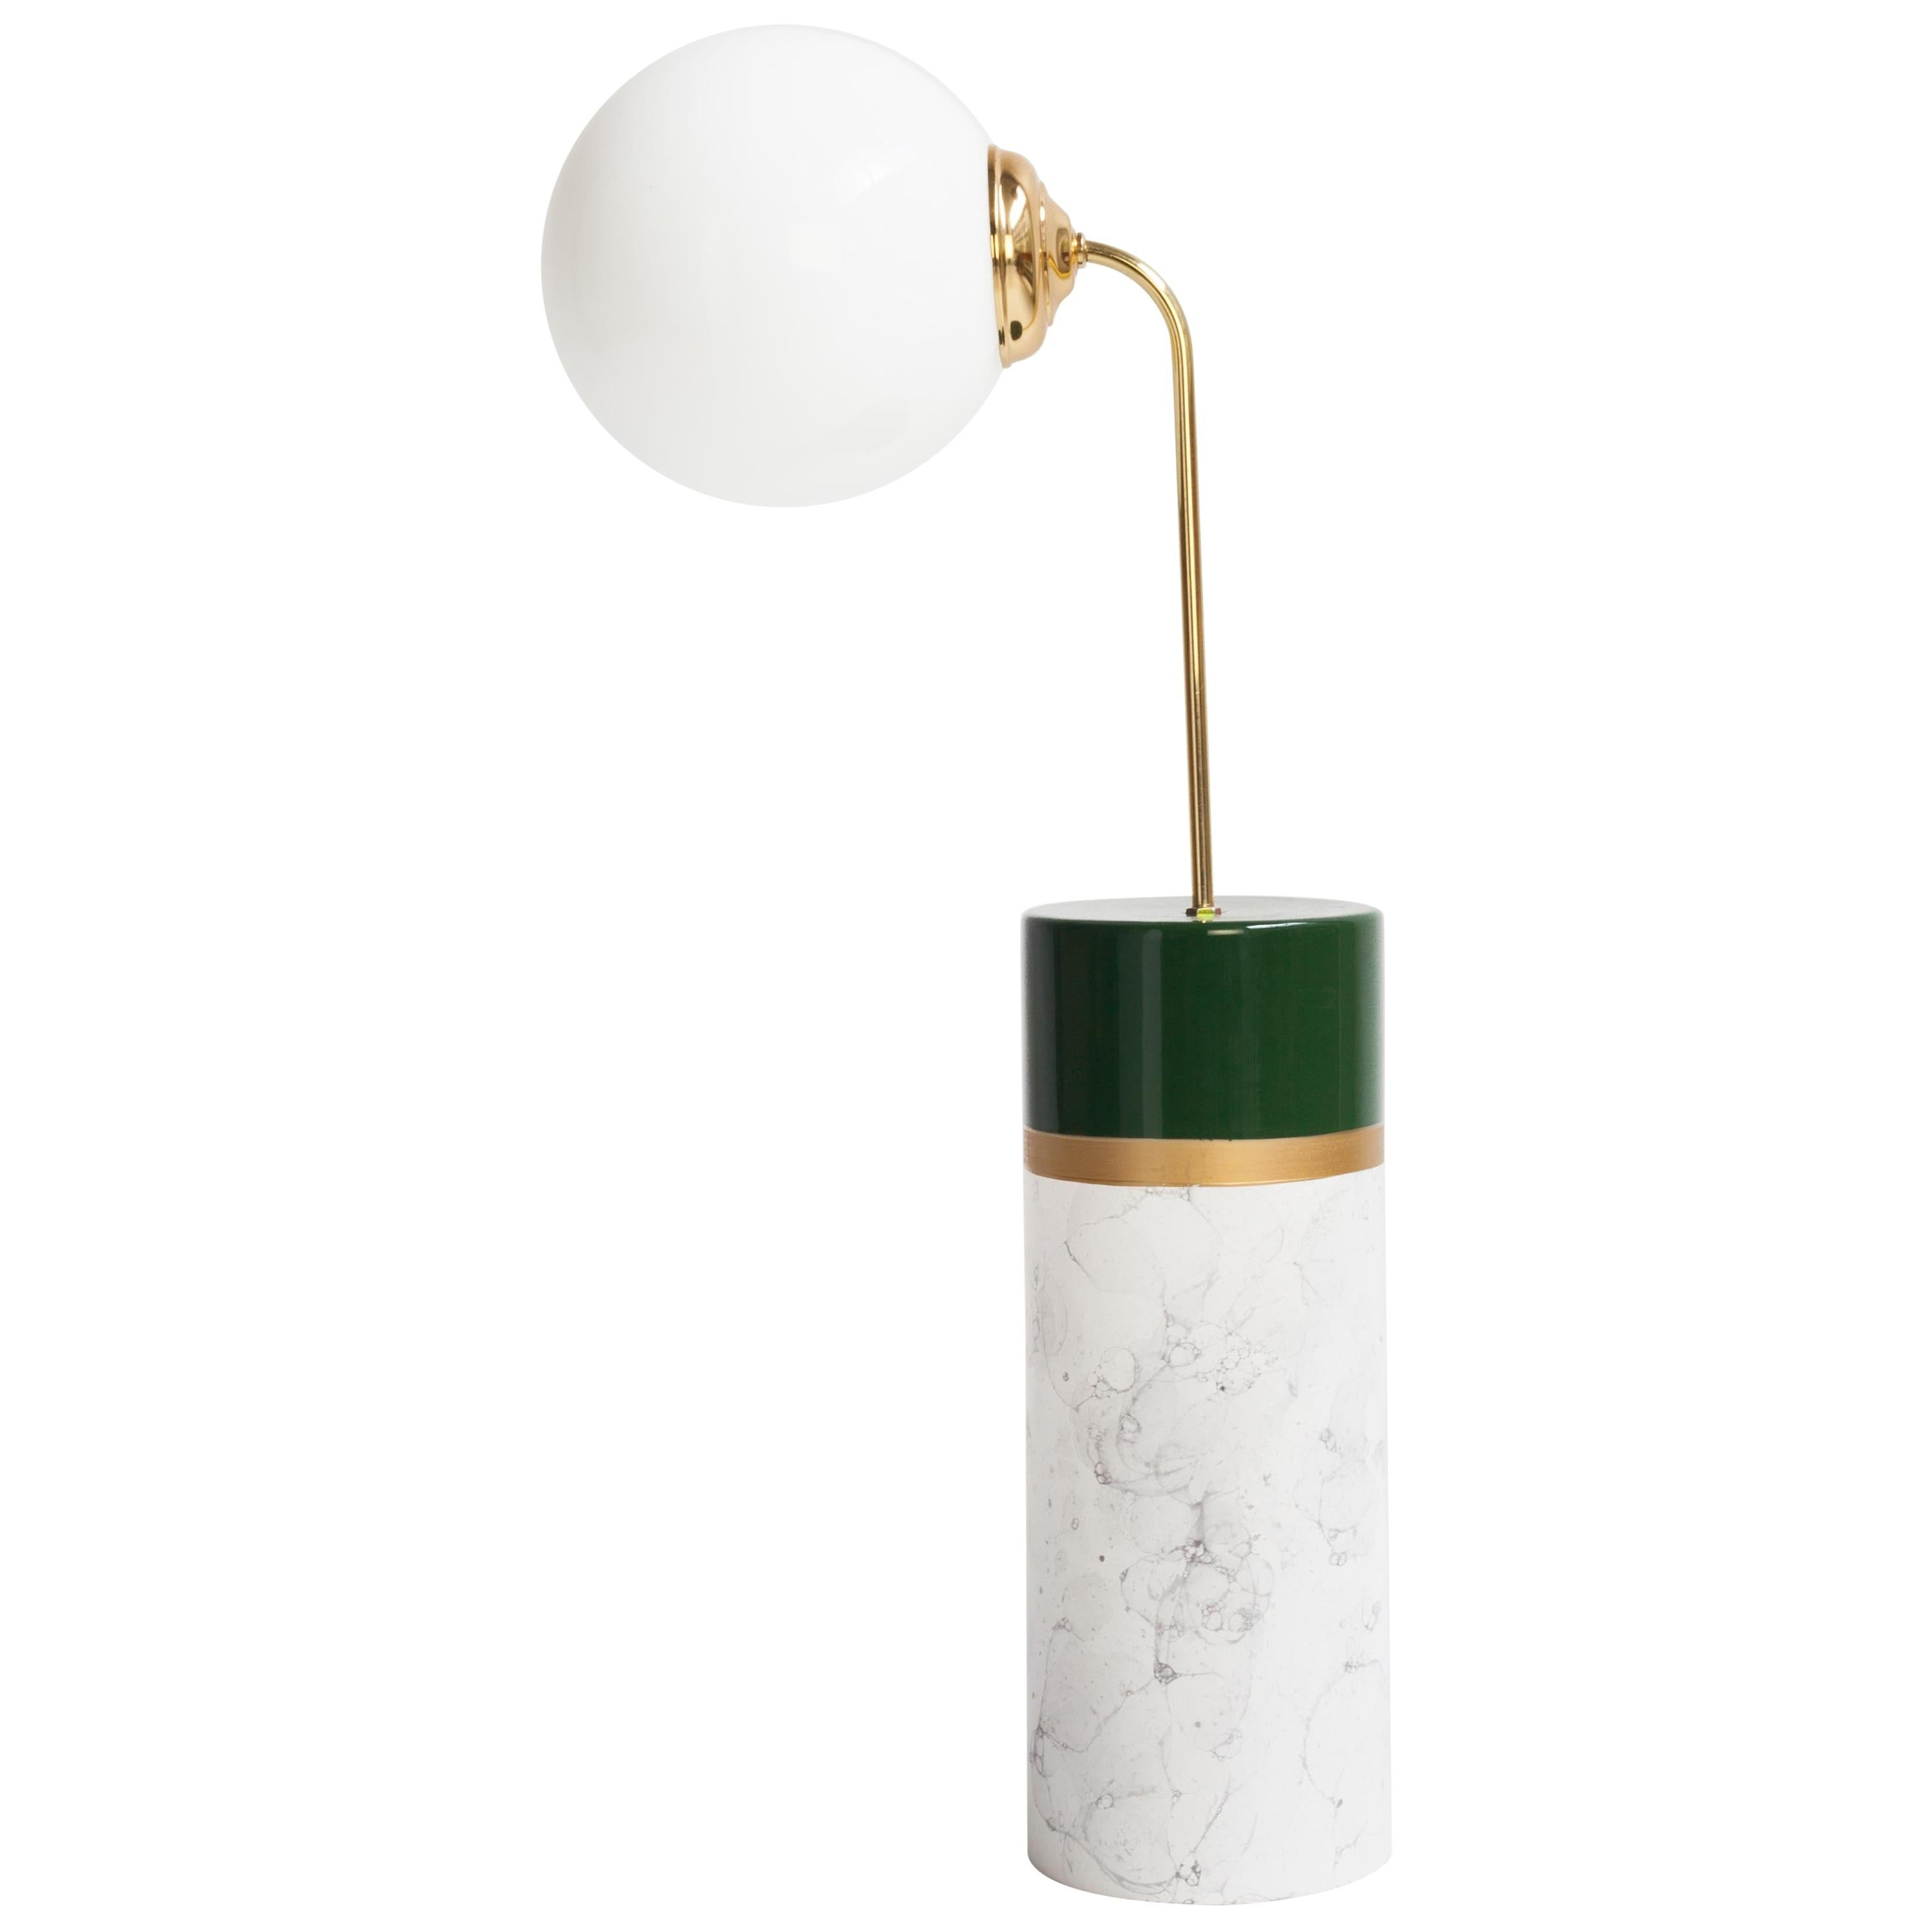 Avalon Round Floor Lamp by Houtique